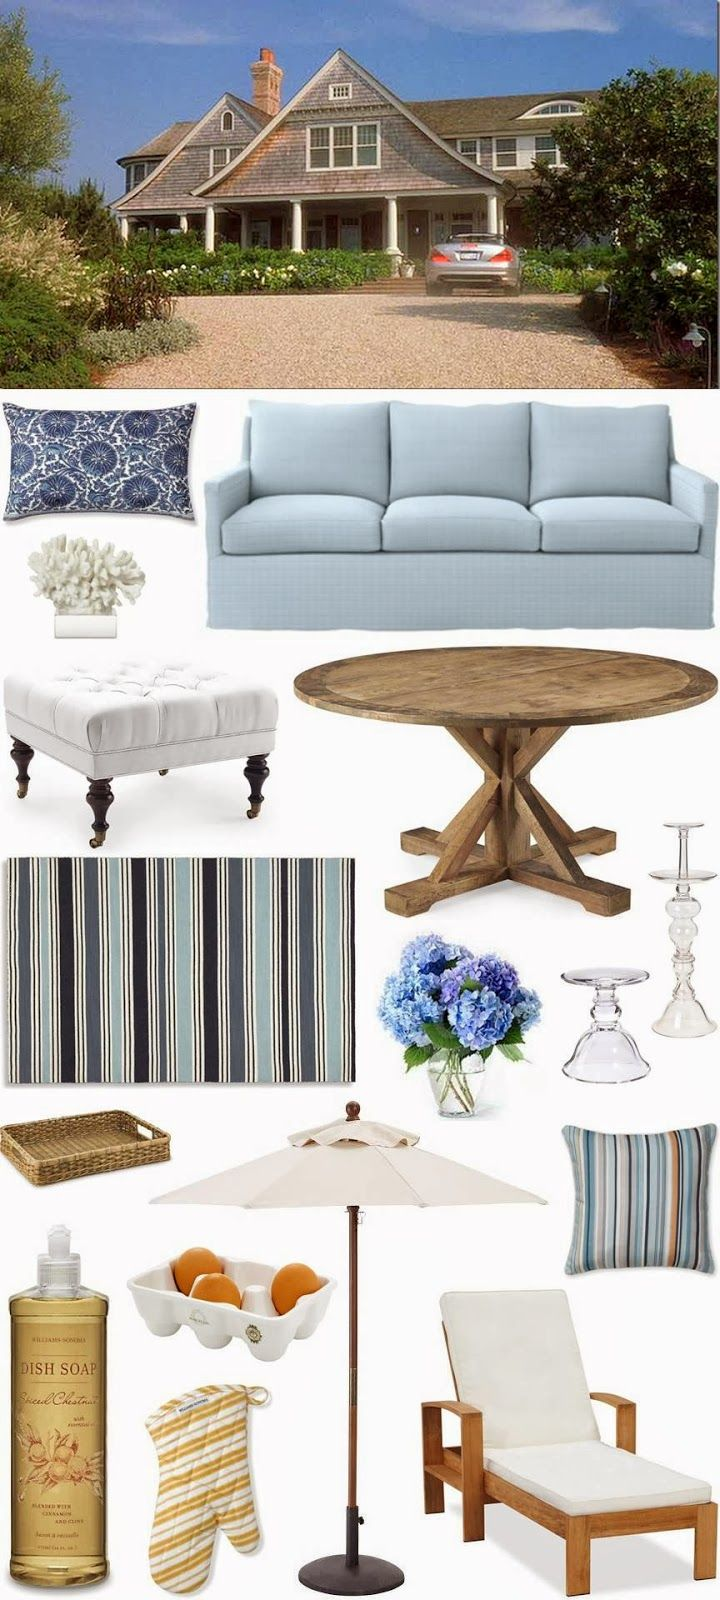 One Of My Favorite Beach House Get The Looks Hamptons Style DecorHamptons HouseHamptons HousesSomethings Gotta GiveHampton